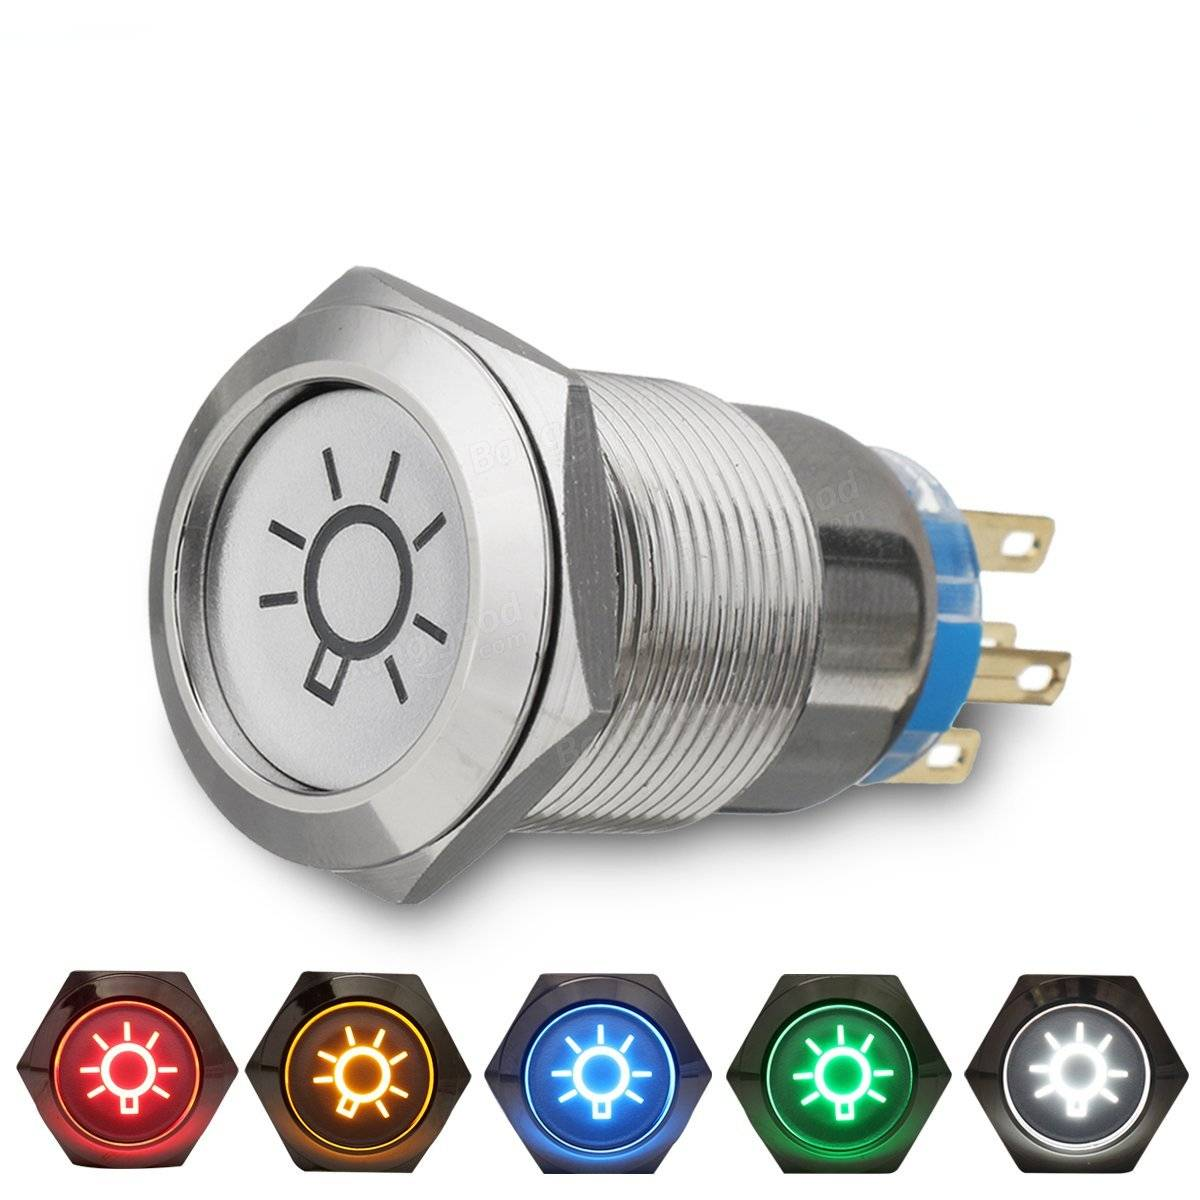 19mm 12V LED IP65 Push Button On Off Dome Light Switch Sale ...